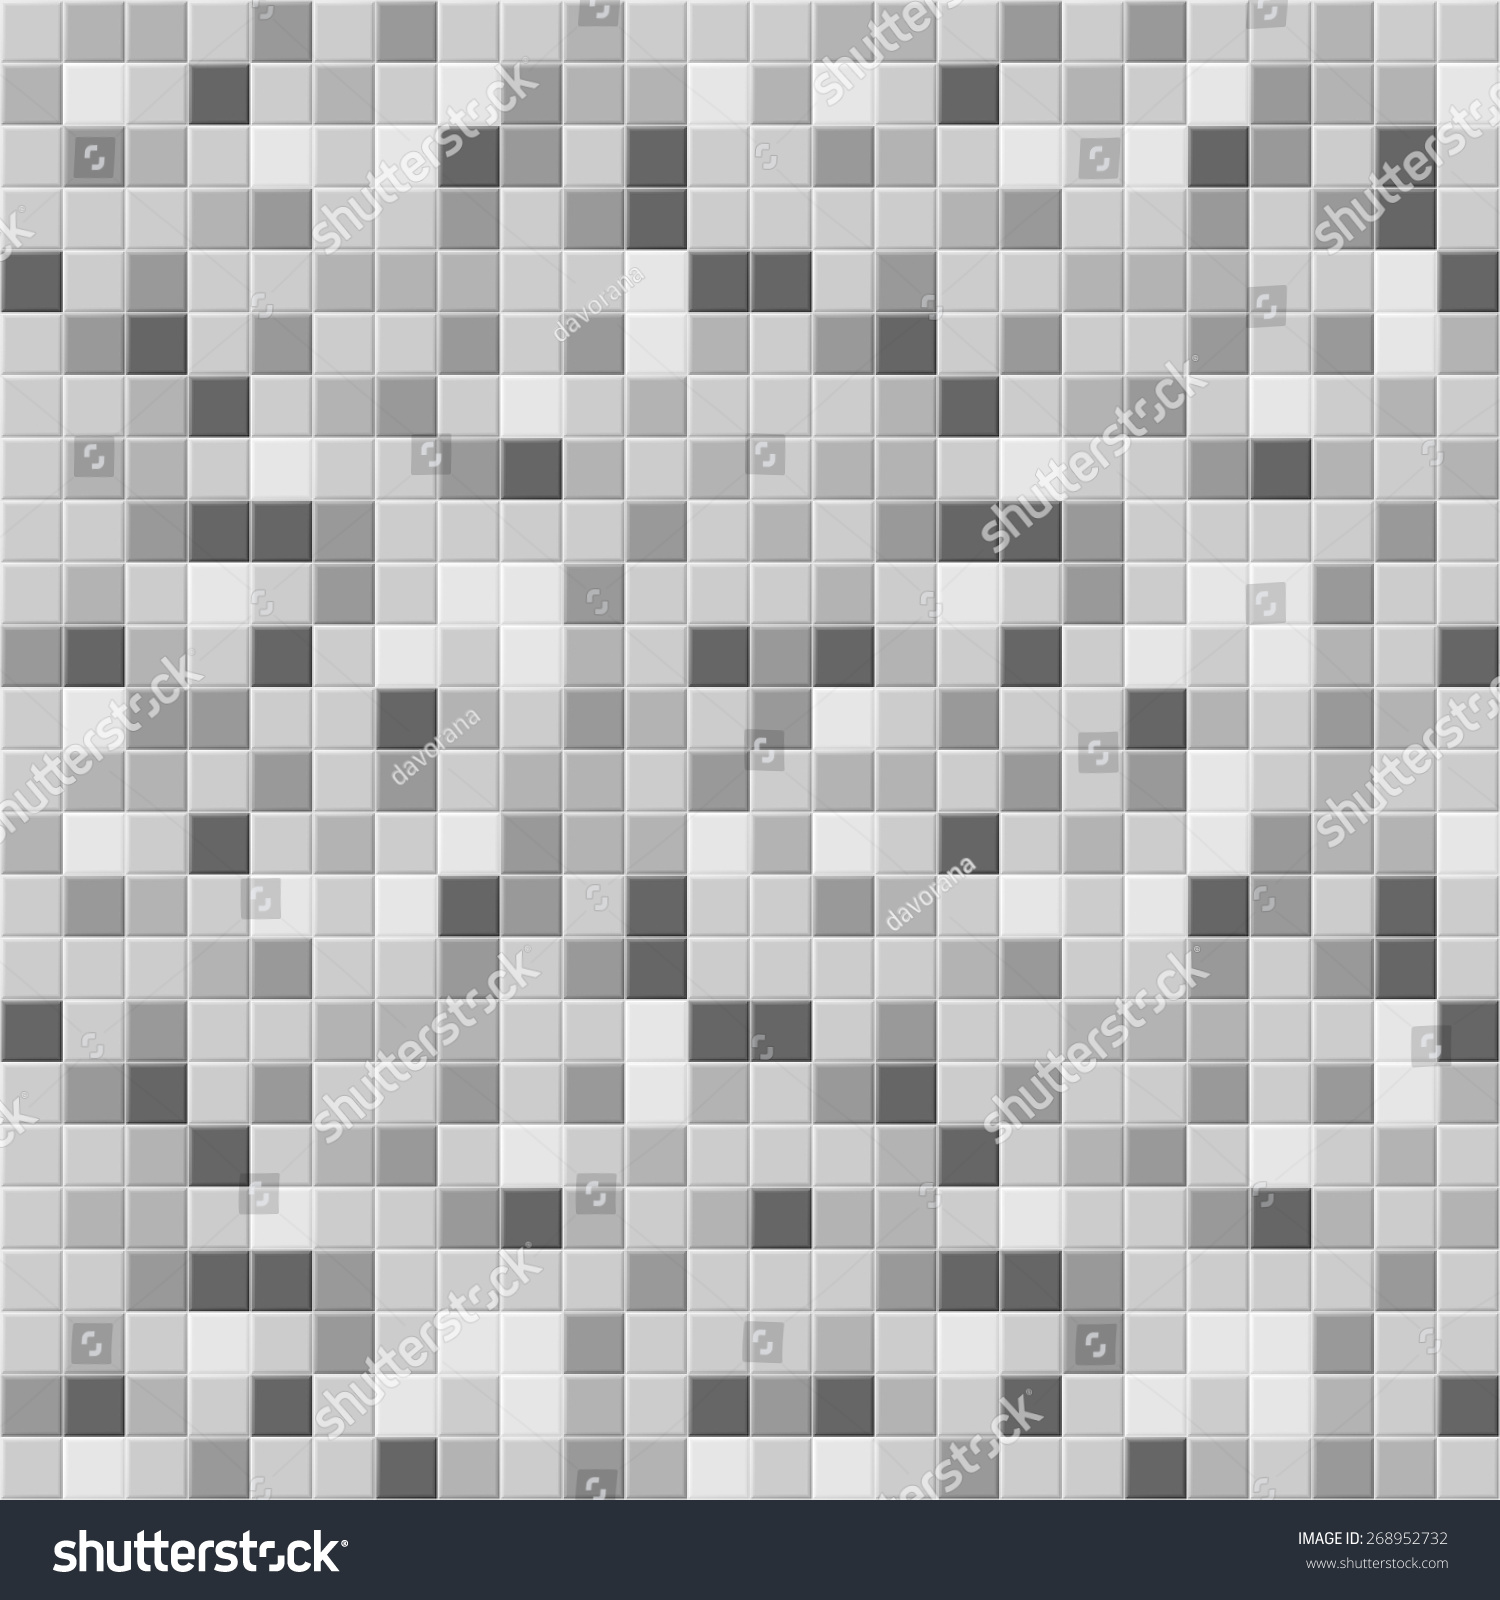 Grey Kitchen Tiles Texture: Many Gray Shades Abstract Tiling Geometric Texture. Black